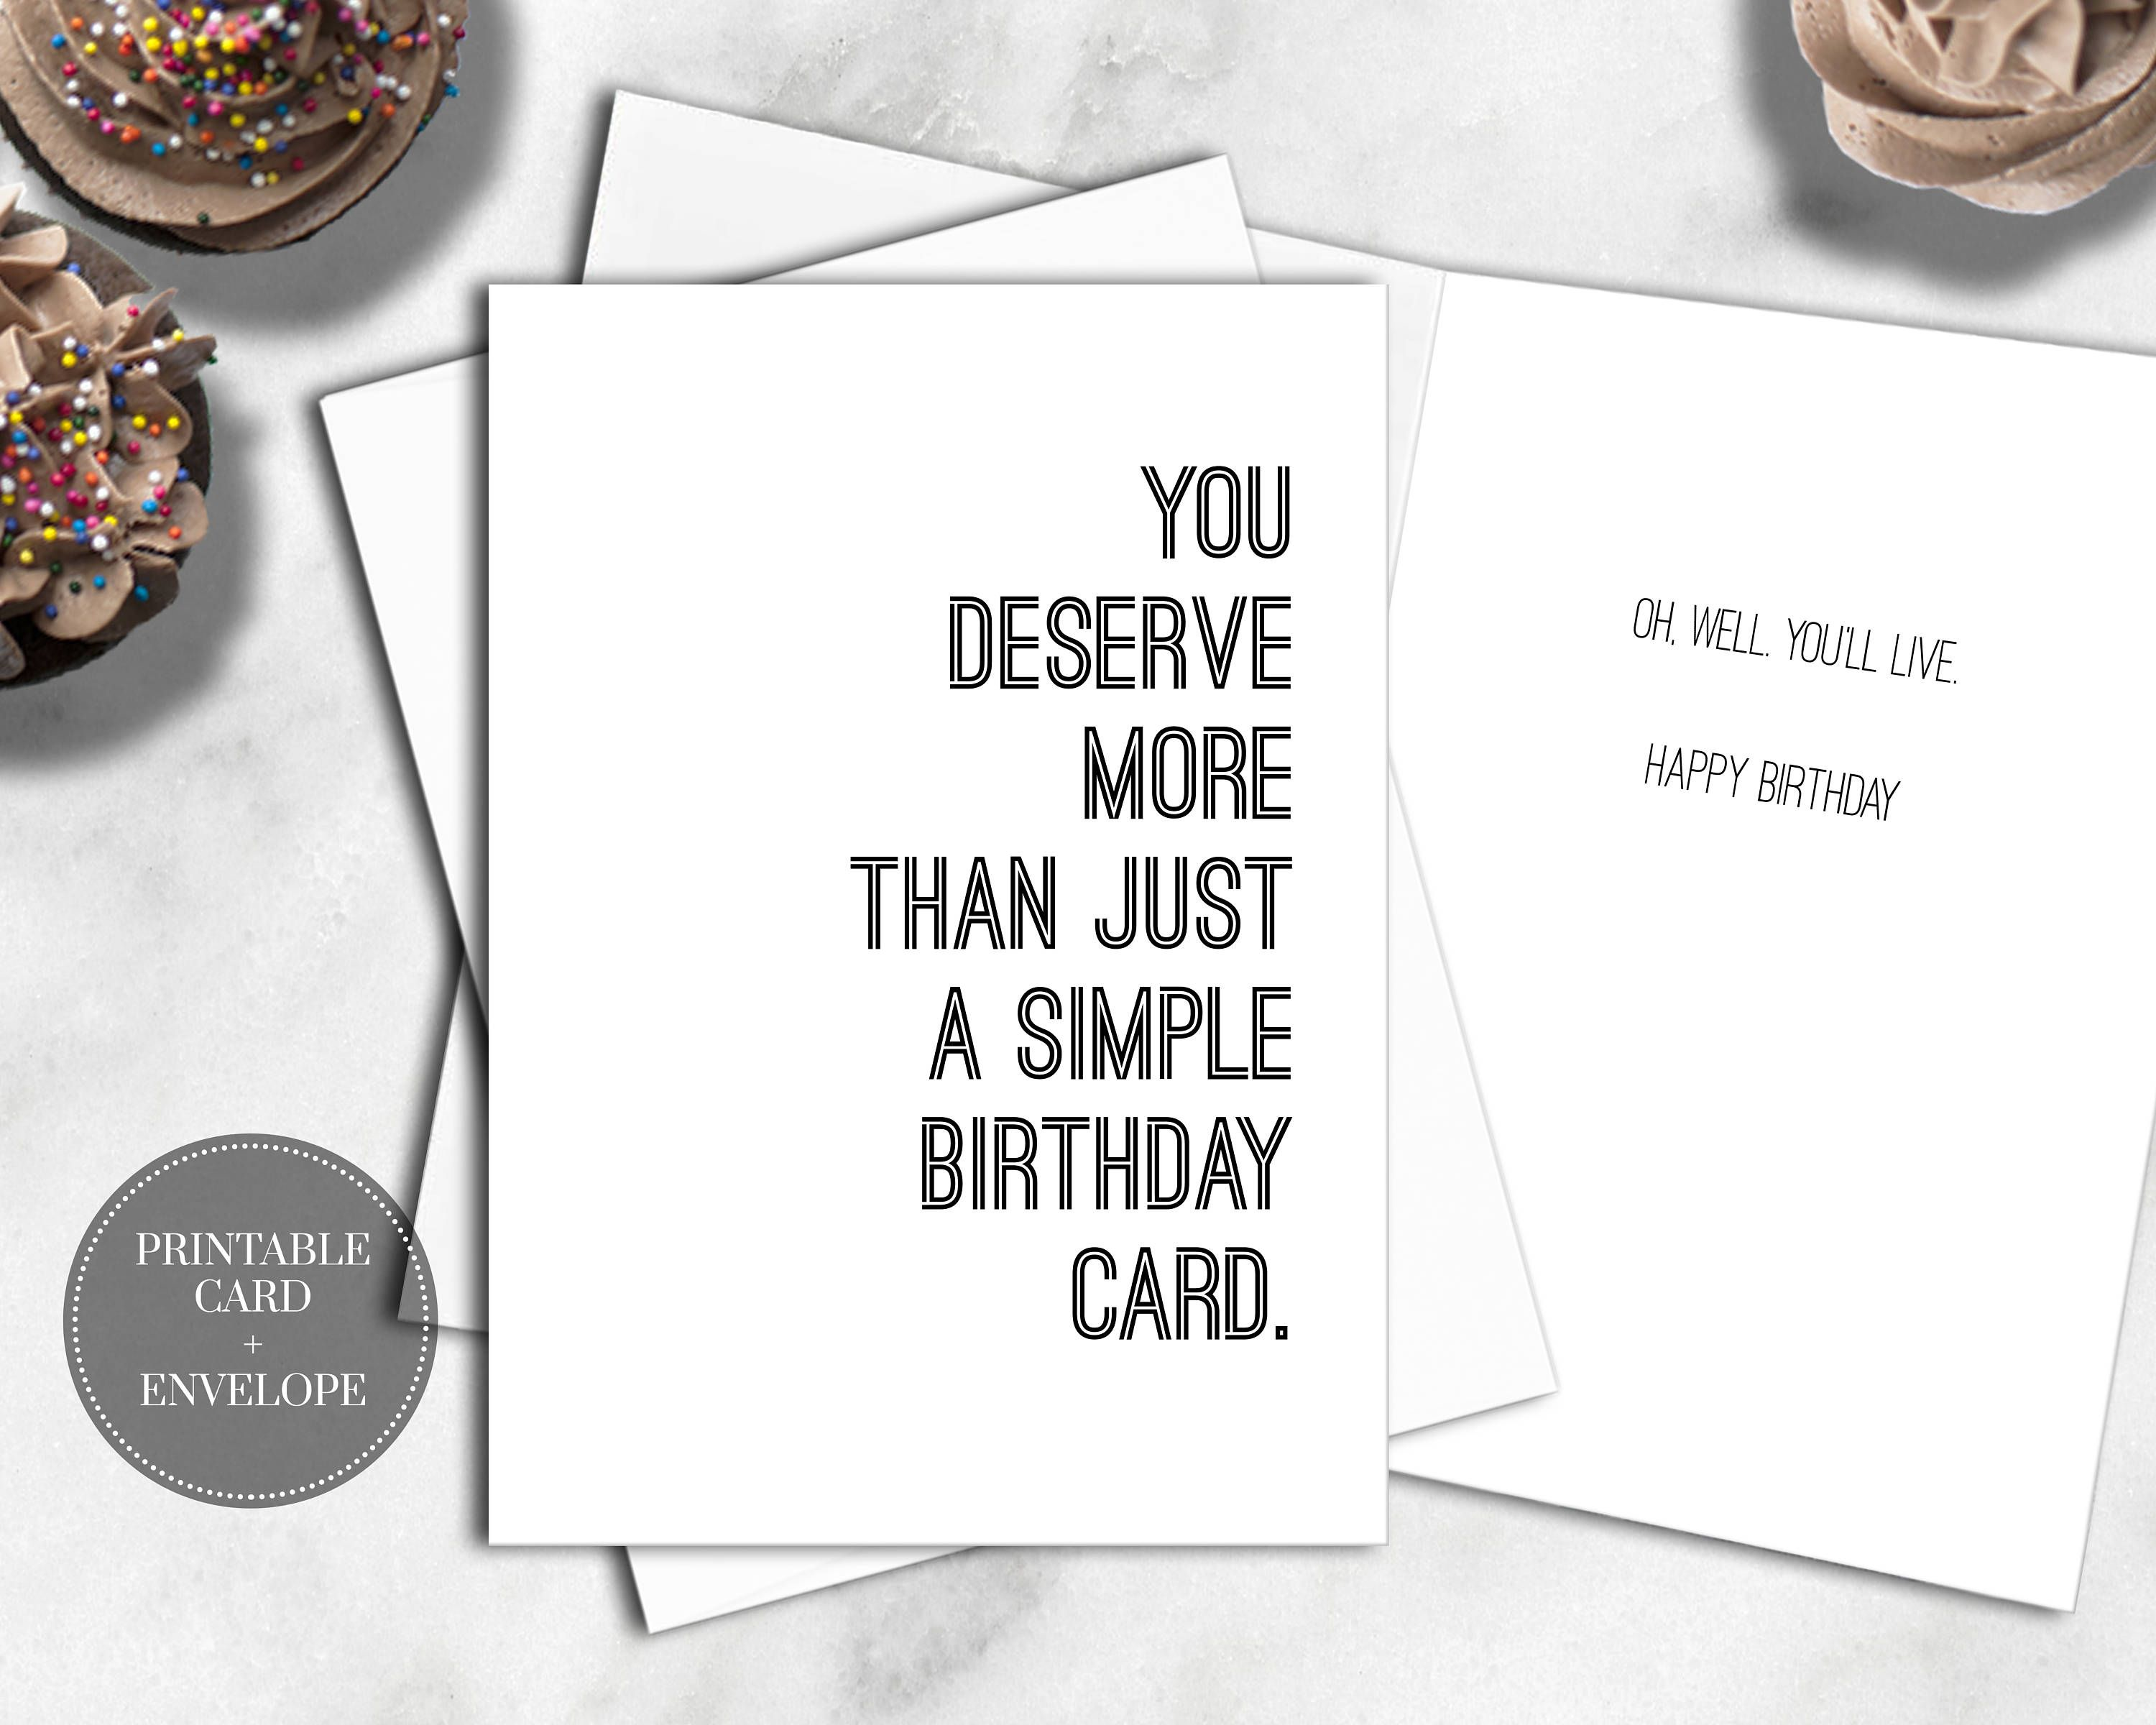 PRINTABLE Birthday Card FRONT You Deserve More Than Just A Simple